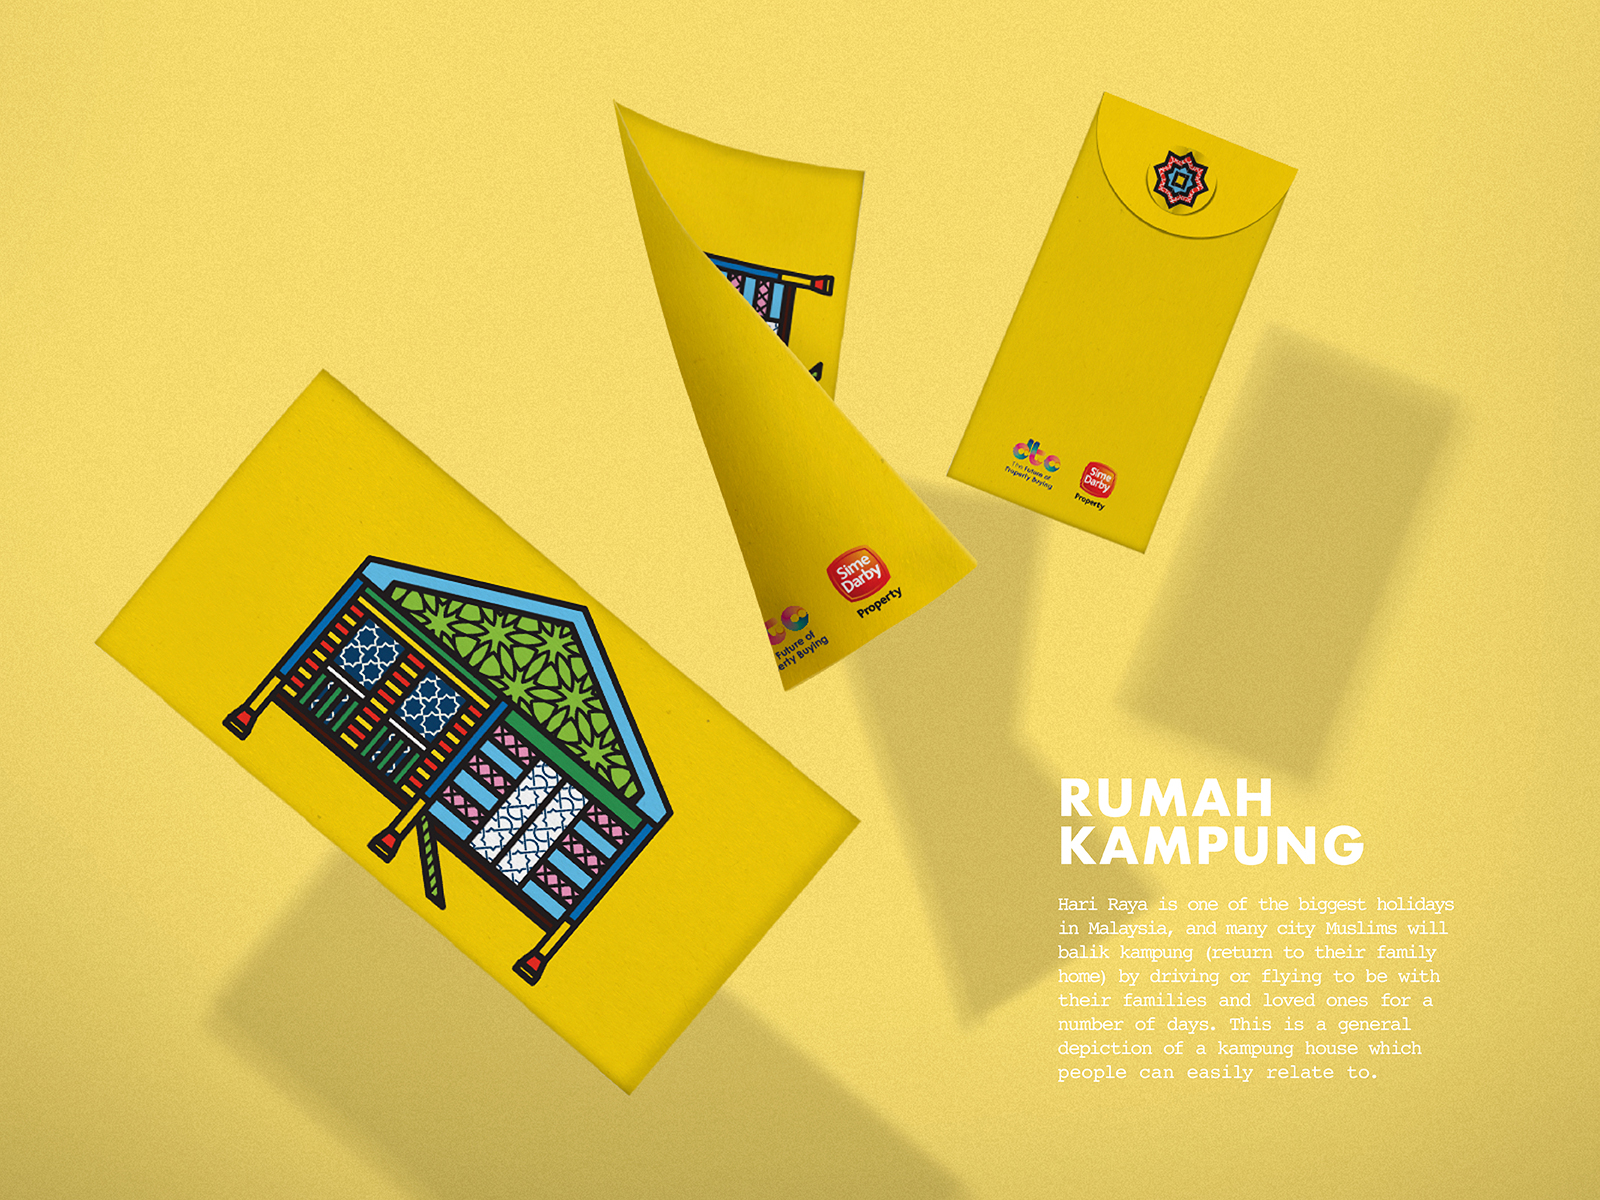 Sime Darby POPRAYA 2019 sampul or green packet design using campaign art direction featuring traditional Malay kampung or country home